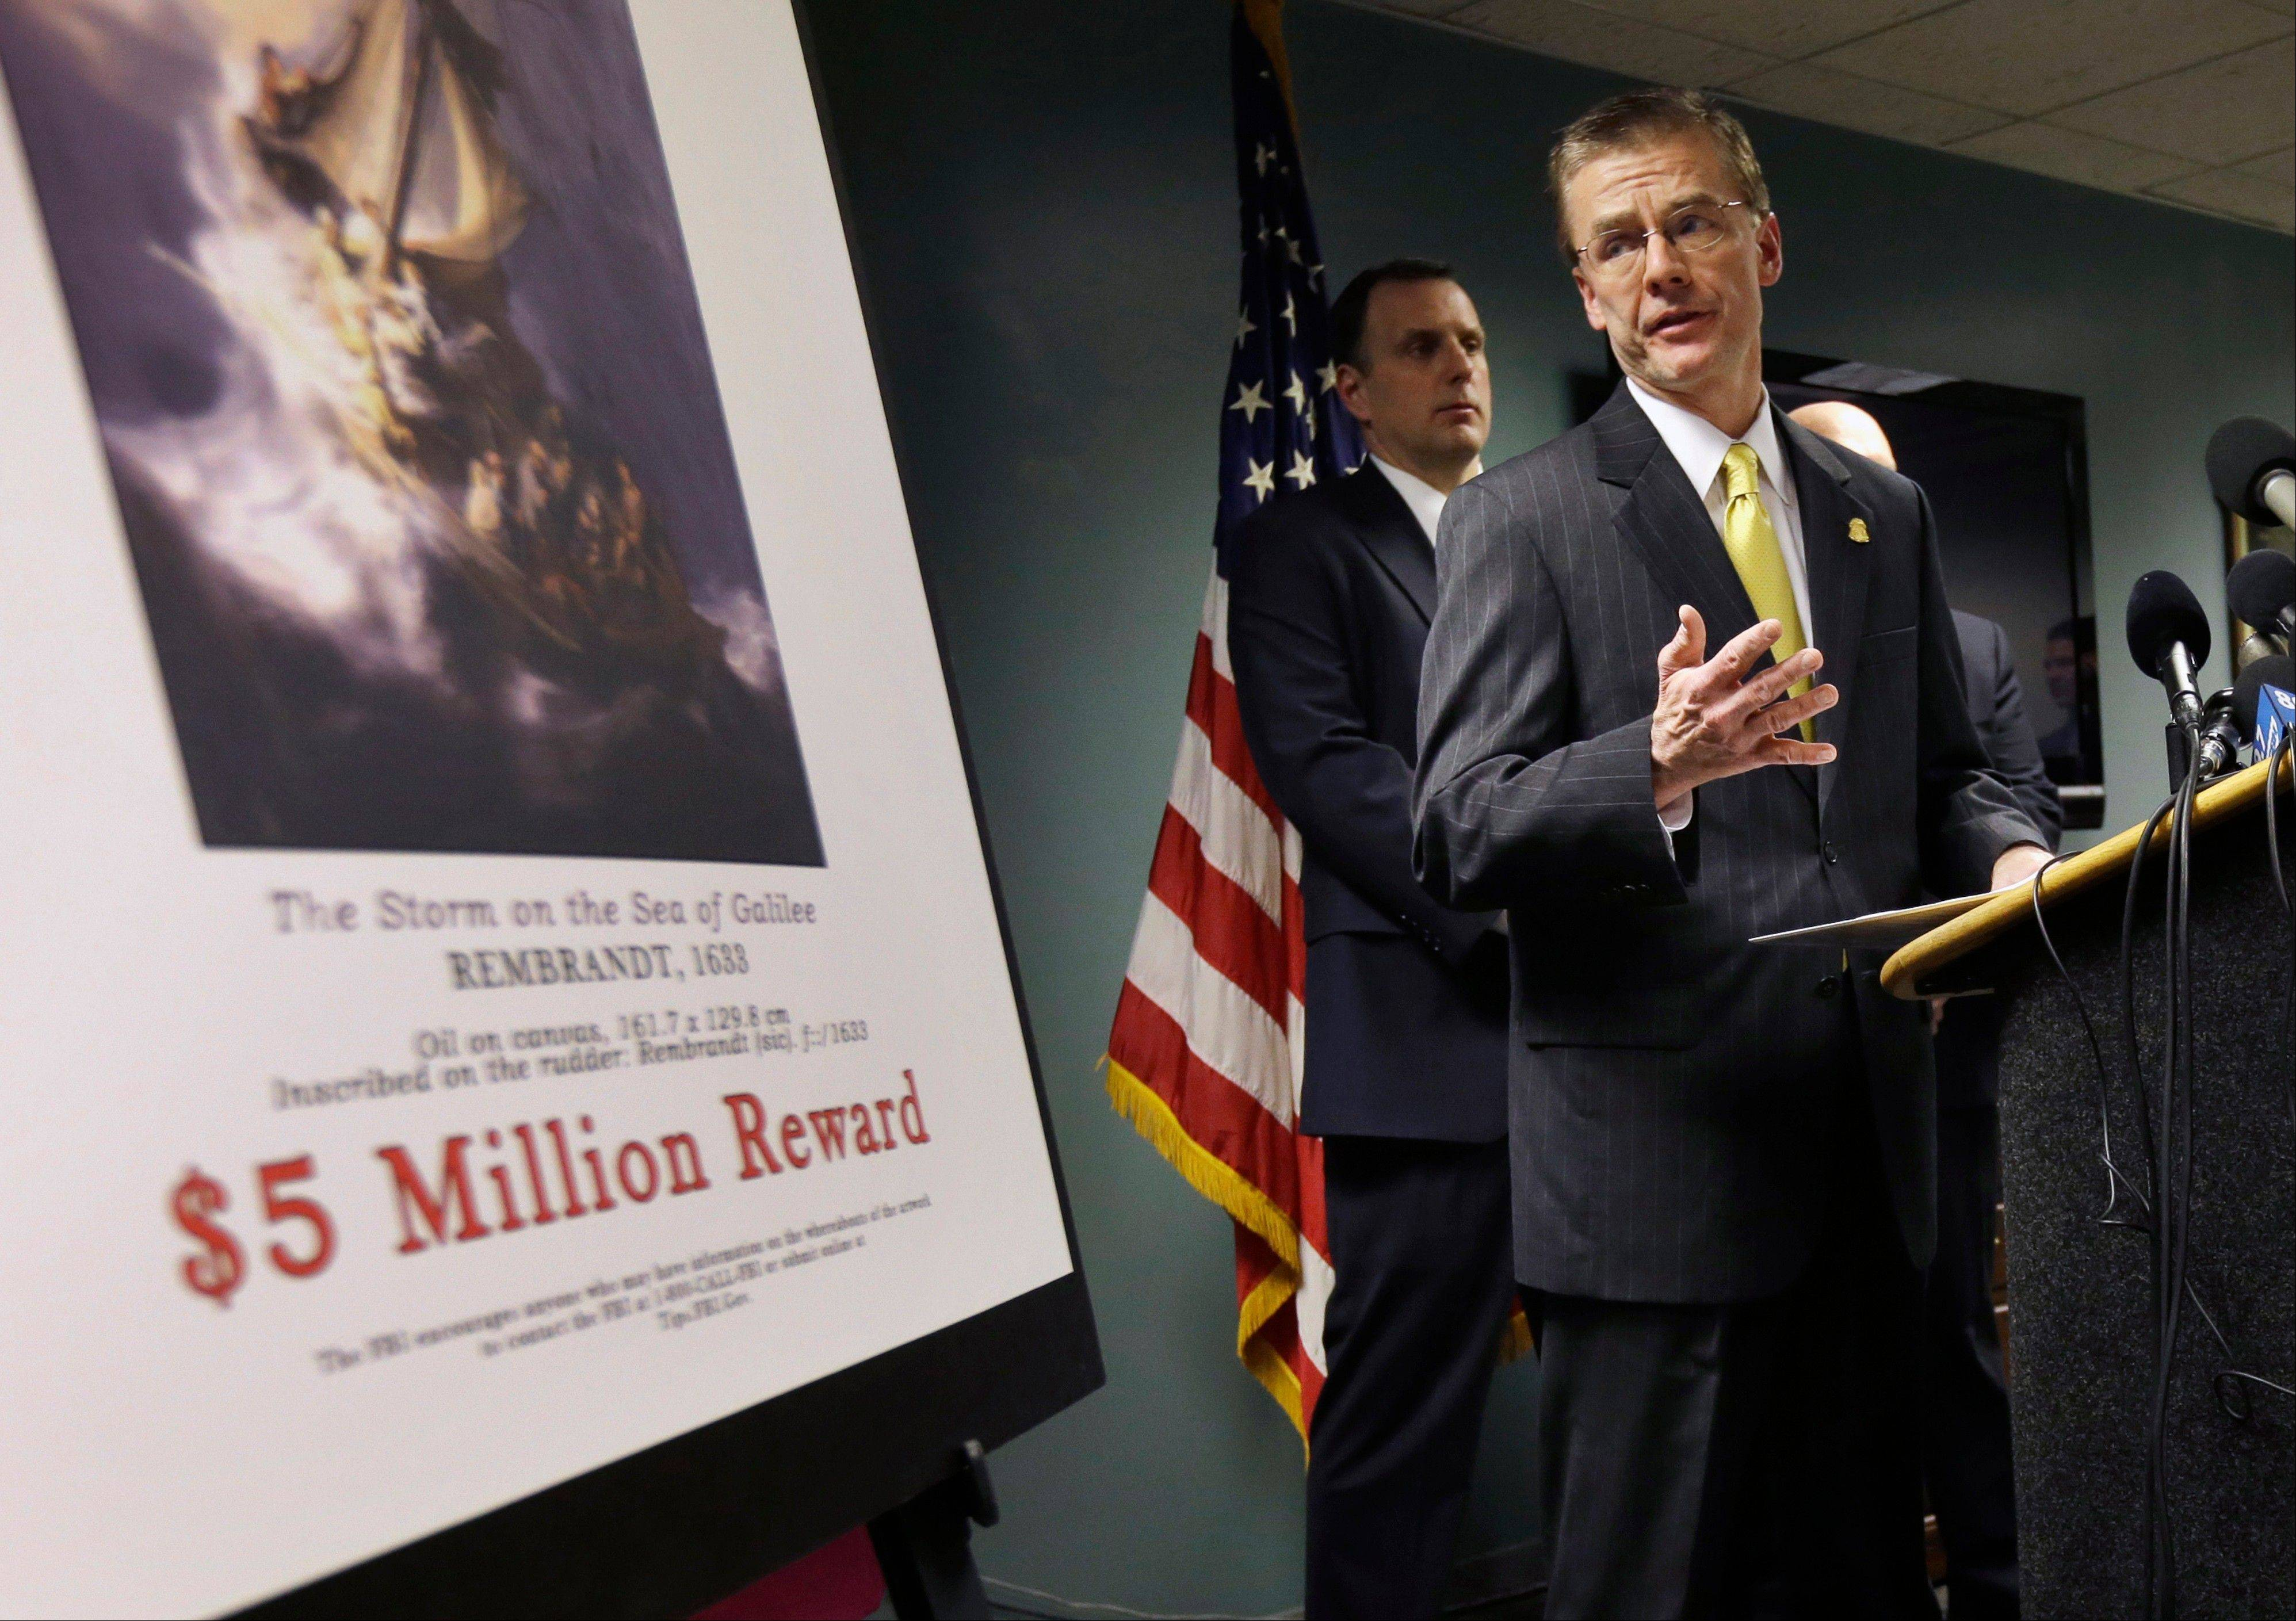 FBI agent Richard DesLauriers, standing next to a poster that shows a Rembrandt painting and offers a reward, on Monday discusses the famed $500 million art theft that occurred in Boston in 1990.